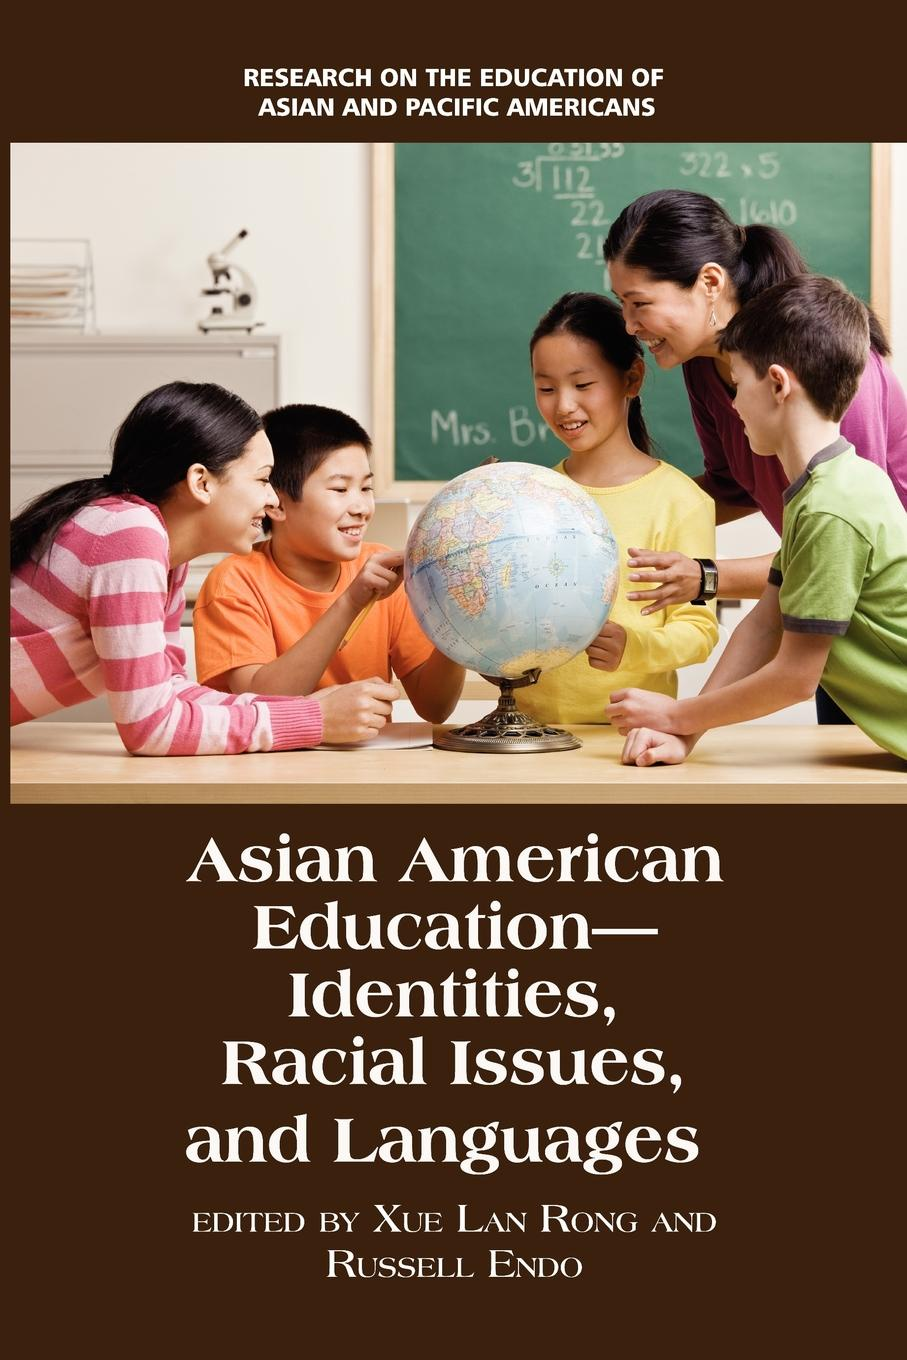 Asian American Education. Identities, Racial Issues, and Languages dina maramba c asian americans in higher education charting new realities aehe volume 40 number 1